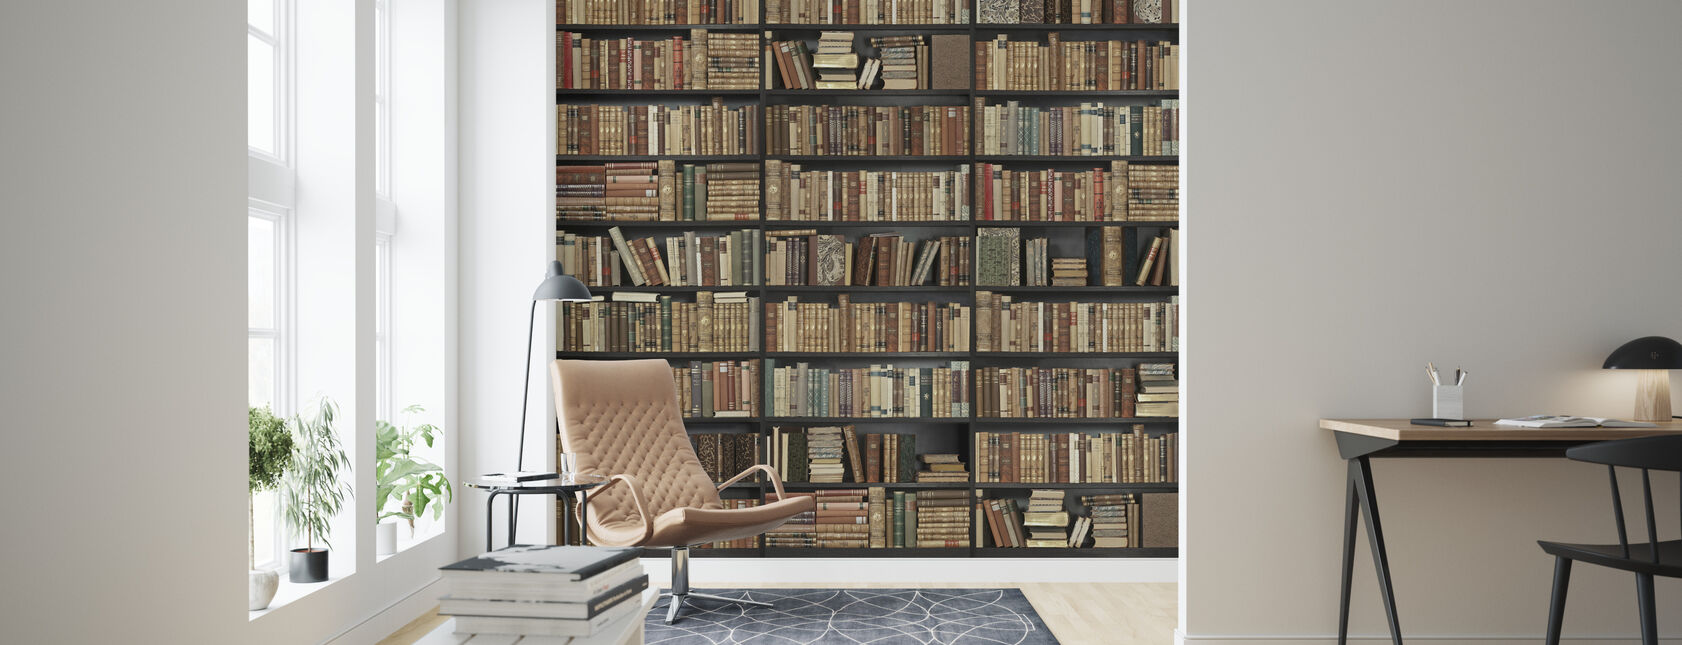 Bookshelf - Black - Brown - Wallpaper - Living Room